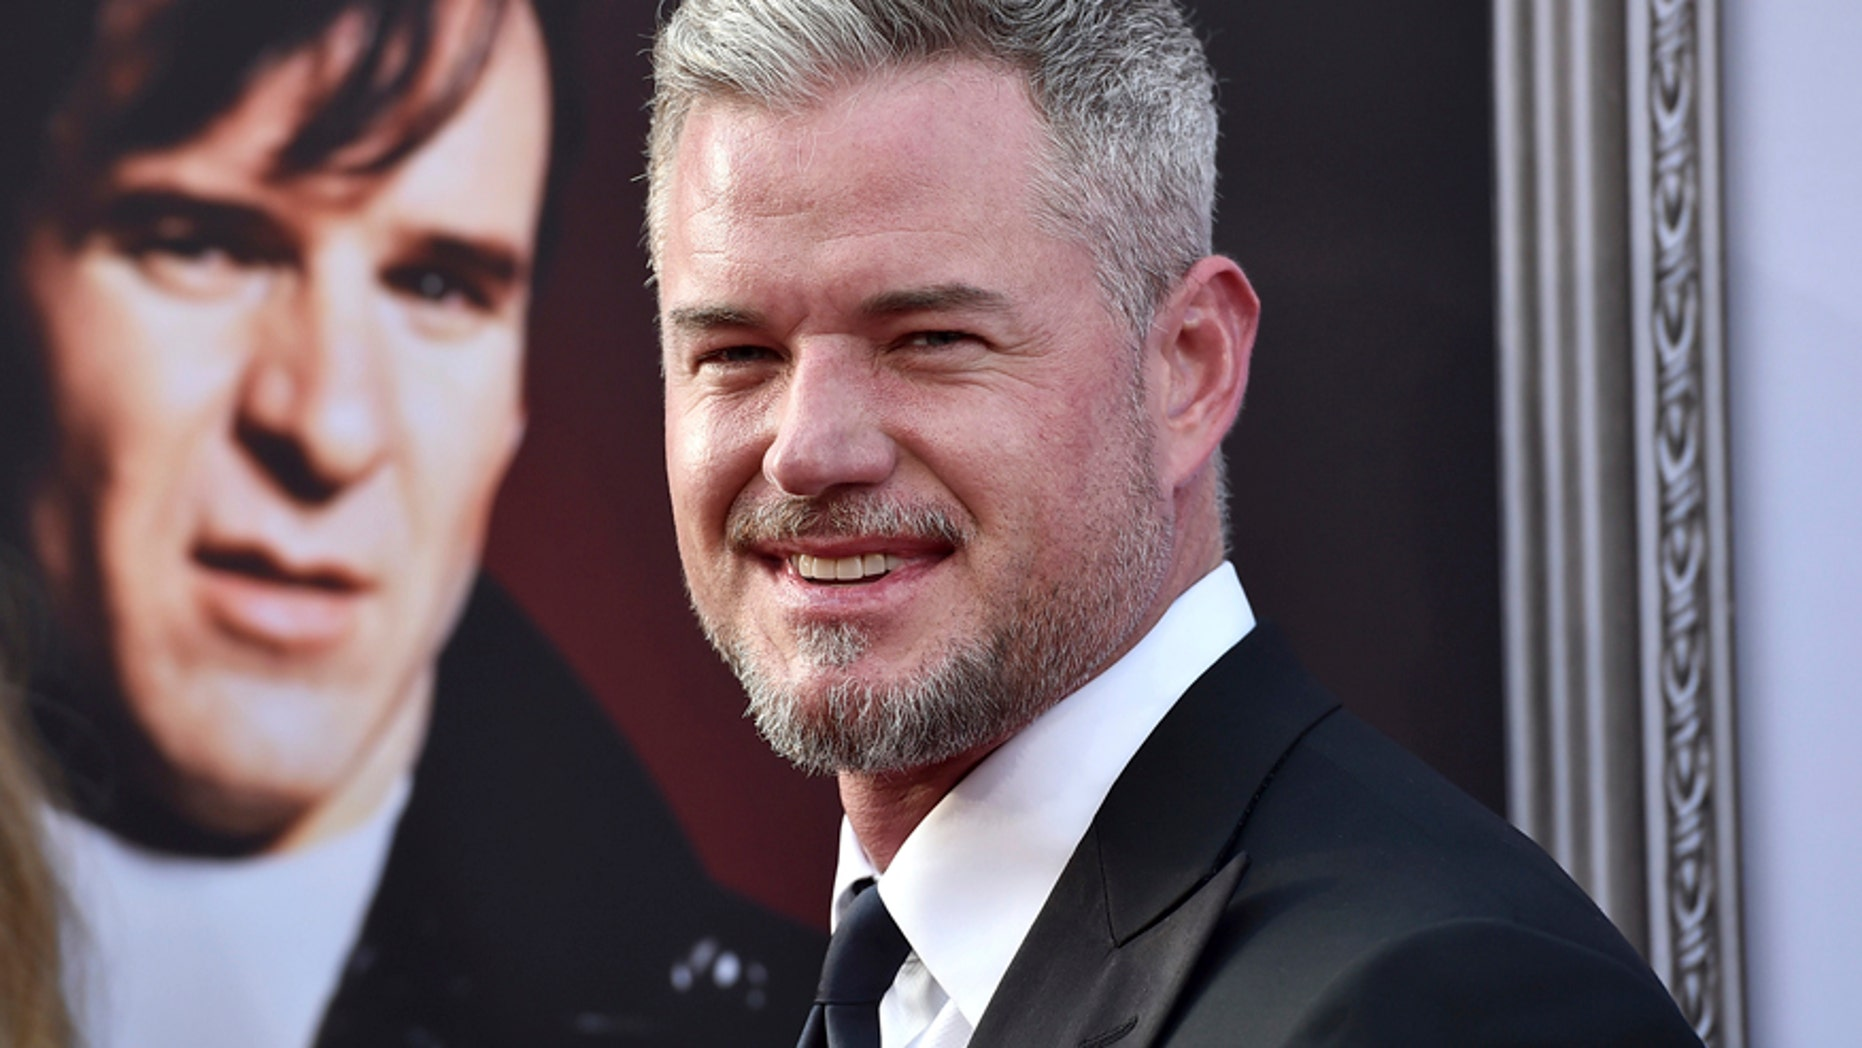 """In this June 4, 2015, file photo, Eric Dane arrives at the 43rd AFI Lifetime Achievement Award Tribute Gala at the Dolby Theatre in Los Angeles. Variety reported April 30, 2017, that TNT has temporarily shut down production of its drama, """"The Last Ship,"""" while Dane battles depression."""